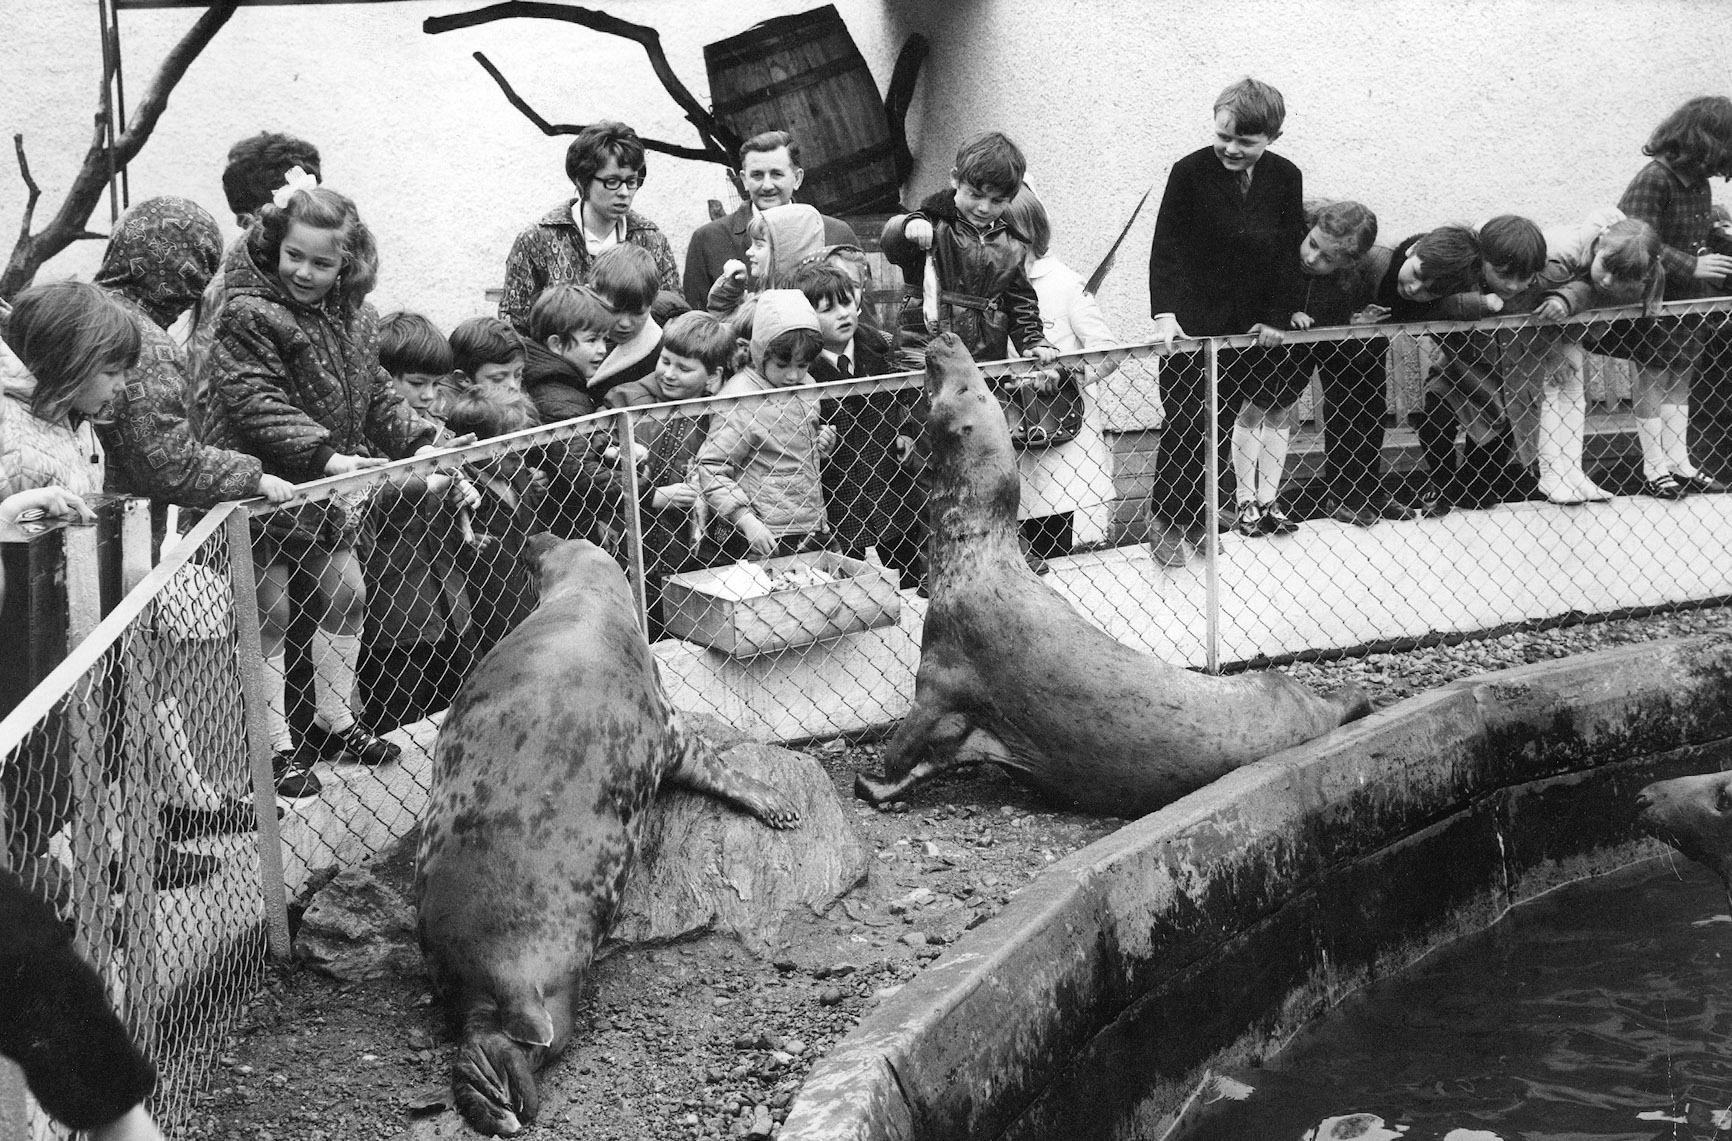 Feeding the seals was a thrill for the children of Inverallochy School, Fraserburgh, when they visited Aberdeen Zoo in May 1972 during an outing to Aberdeen. The children also visited the Winter Gardens at Duthie Park.